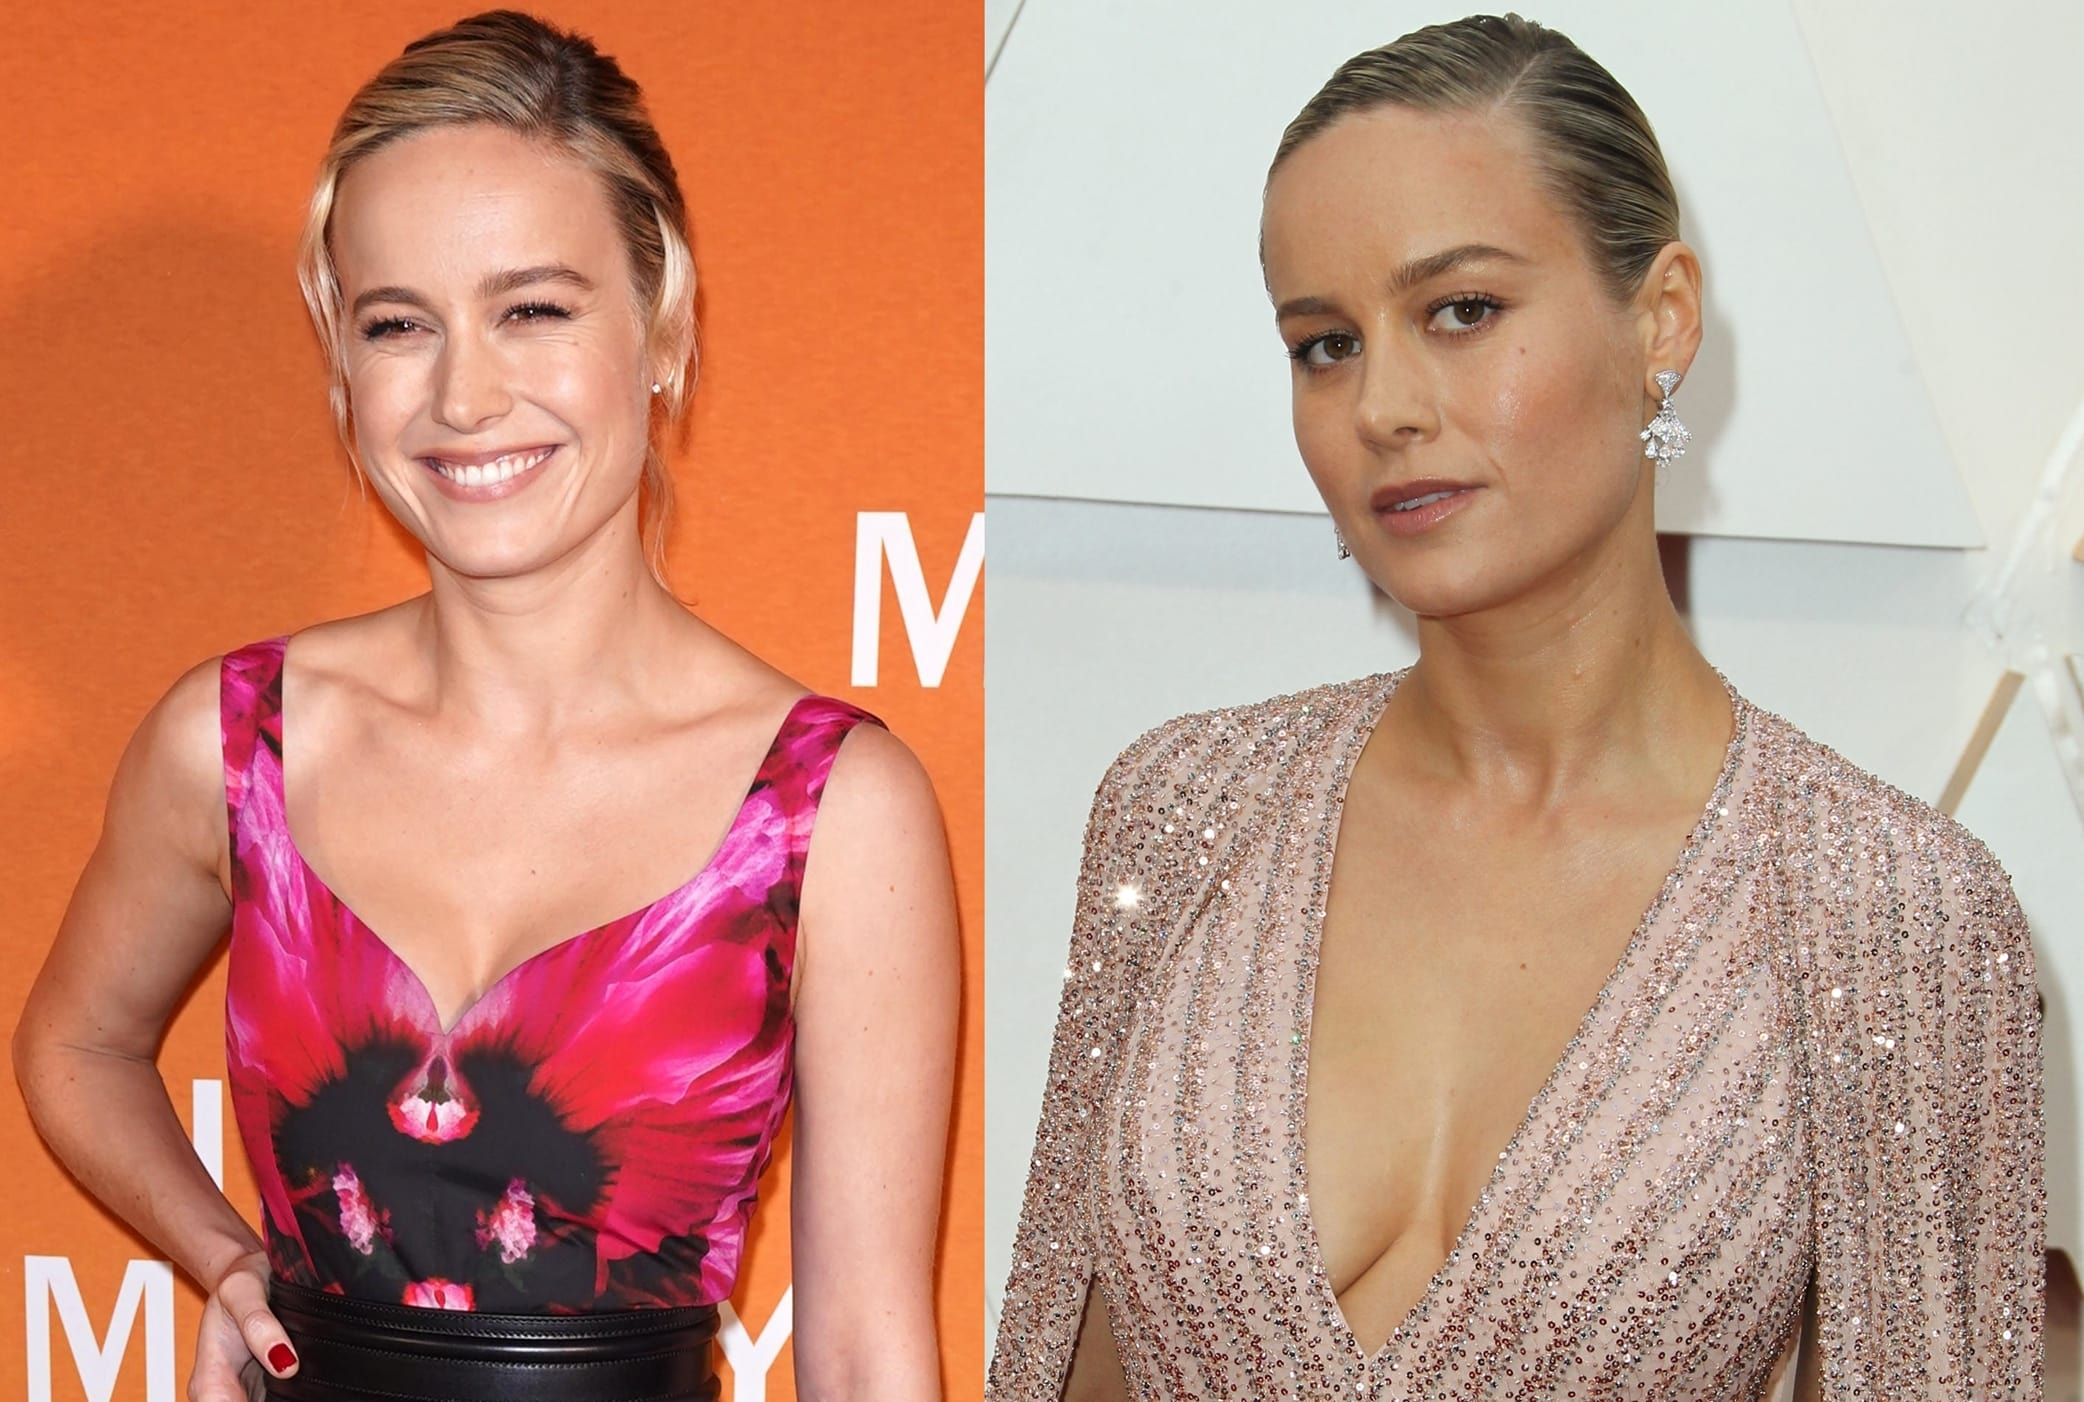 Brie Larson shows off some serious curves in sexy red carpet dresses